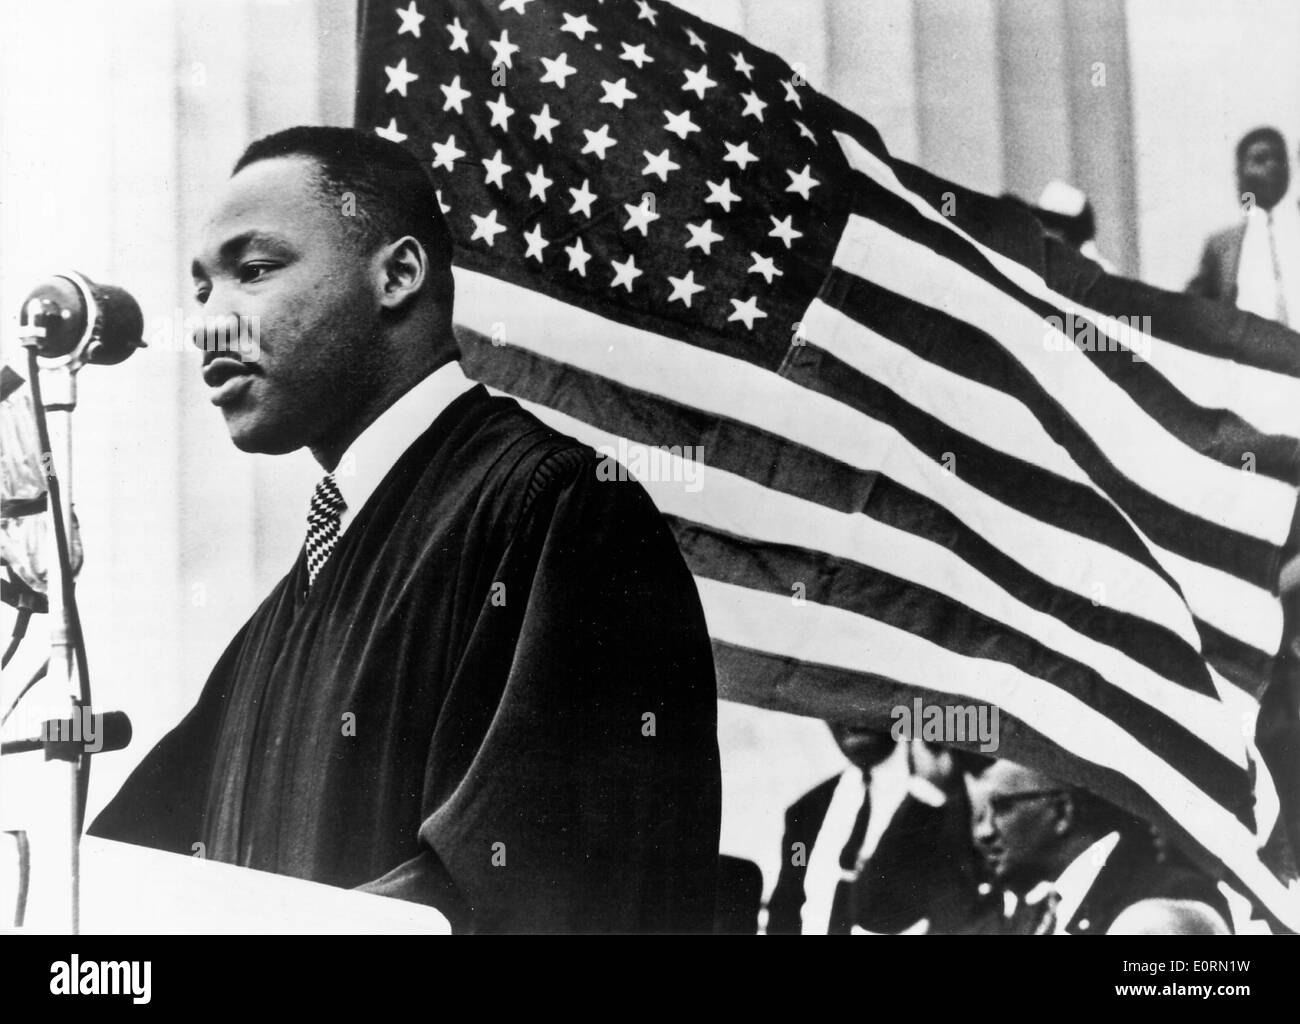 Minister Martin Luther King, Jr. preaching at an event - Stock Image